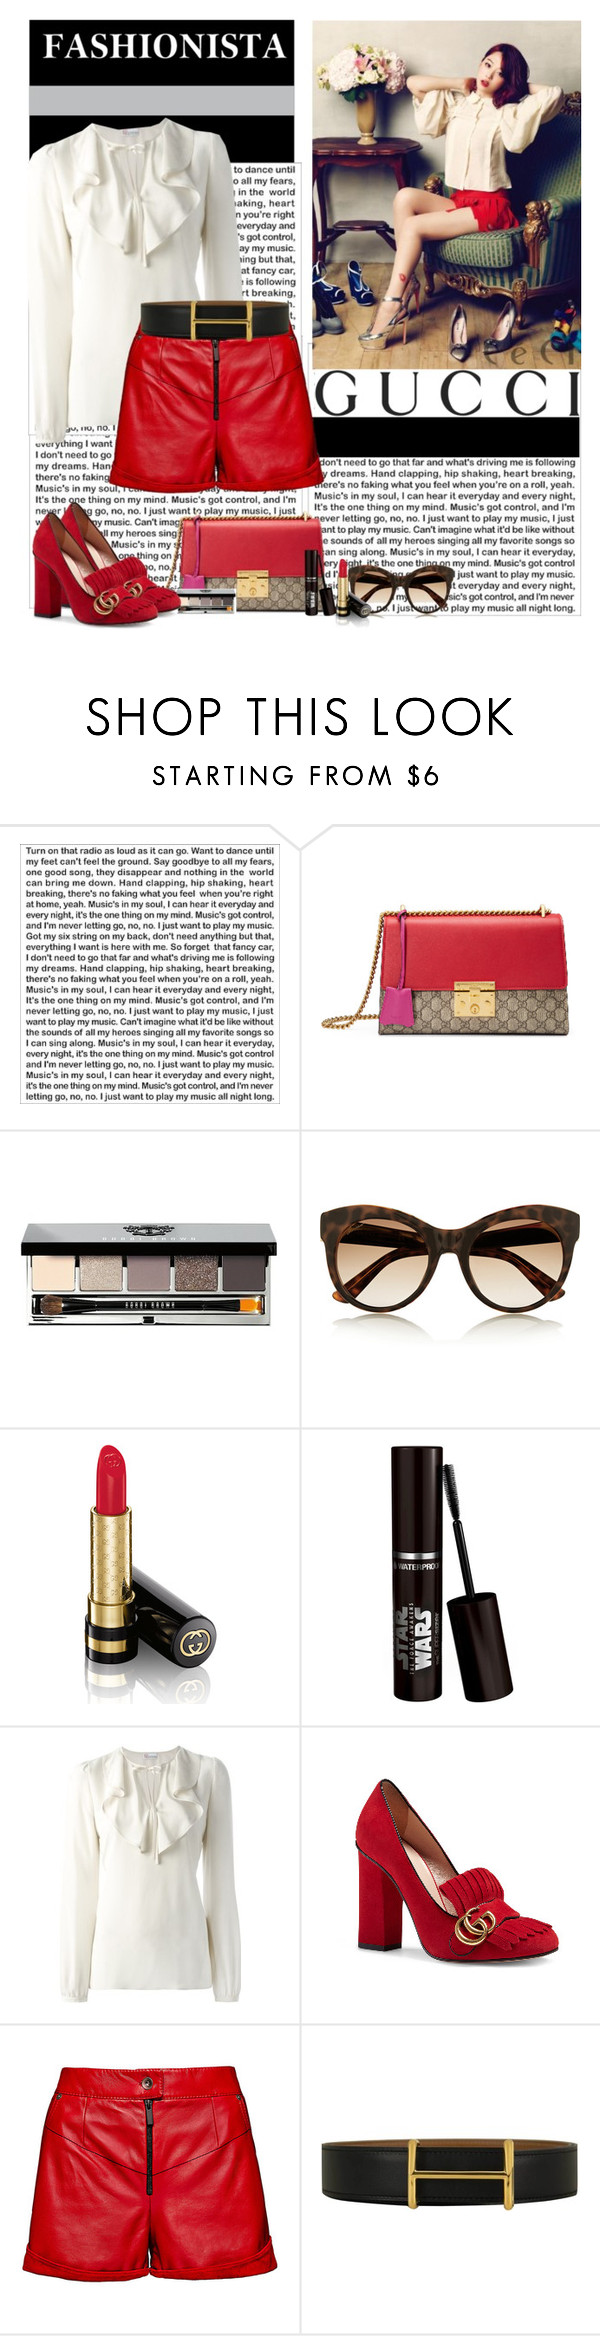 """""""Fashionista"""" by polybaby ❤ liked on Polyvore featuring Camp, Gucci, Bobbi Brown Cosmetics, RED Valentino, Magda Butrym and Hermès"""